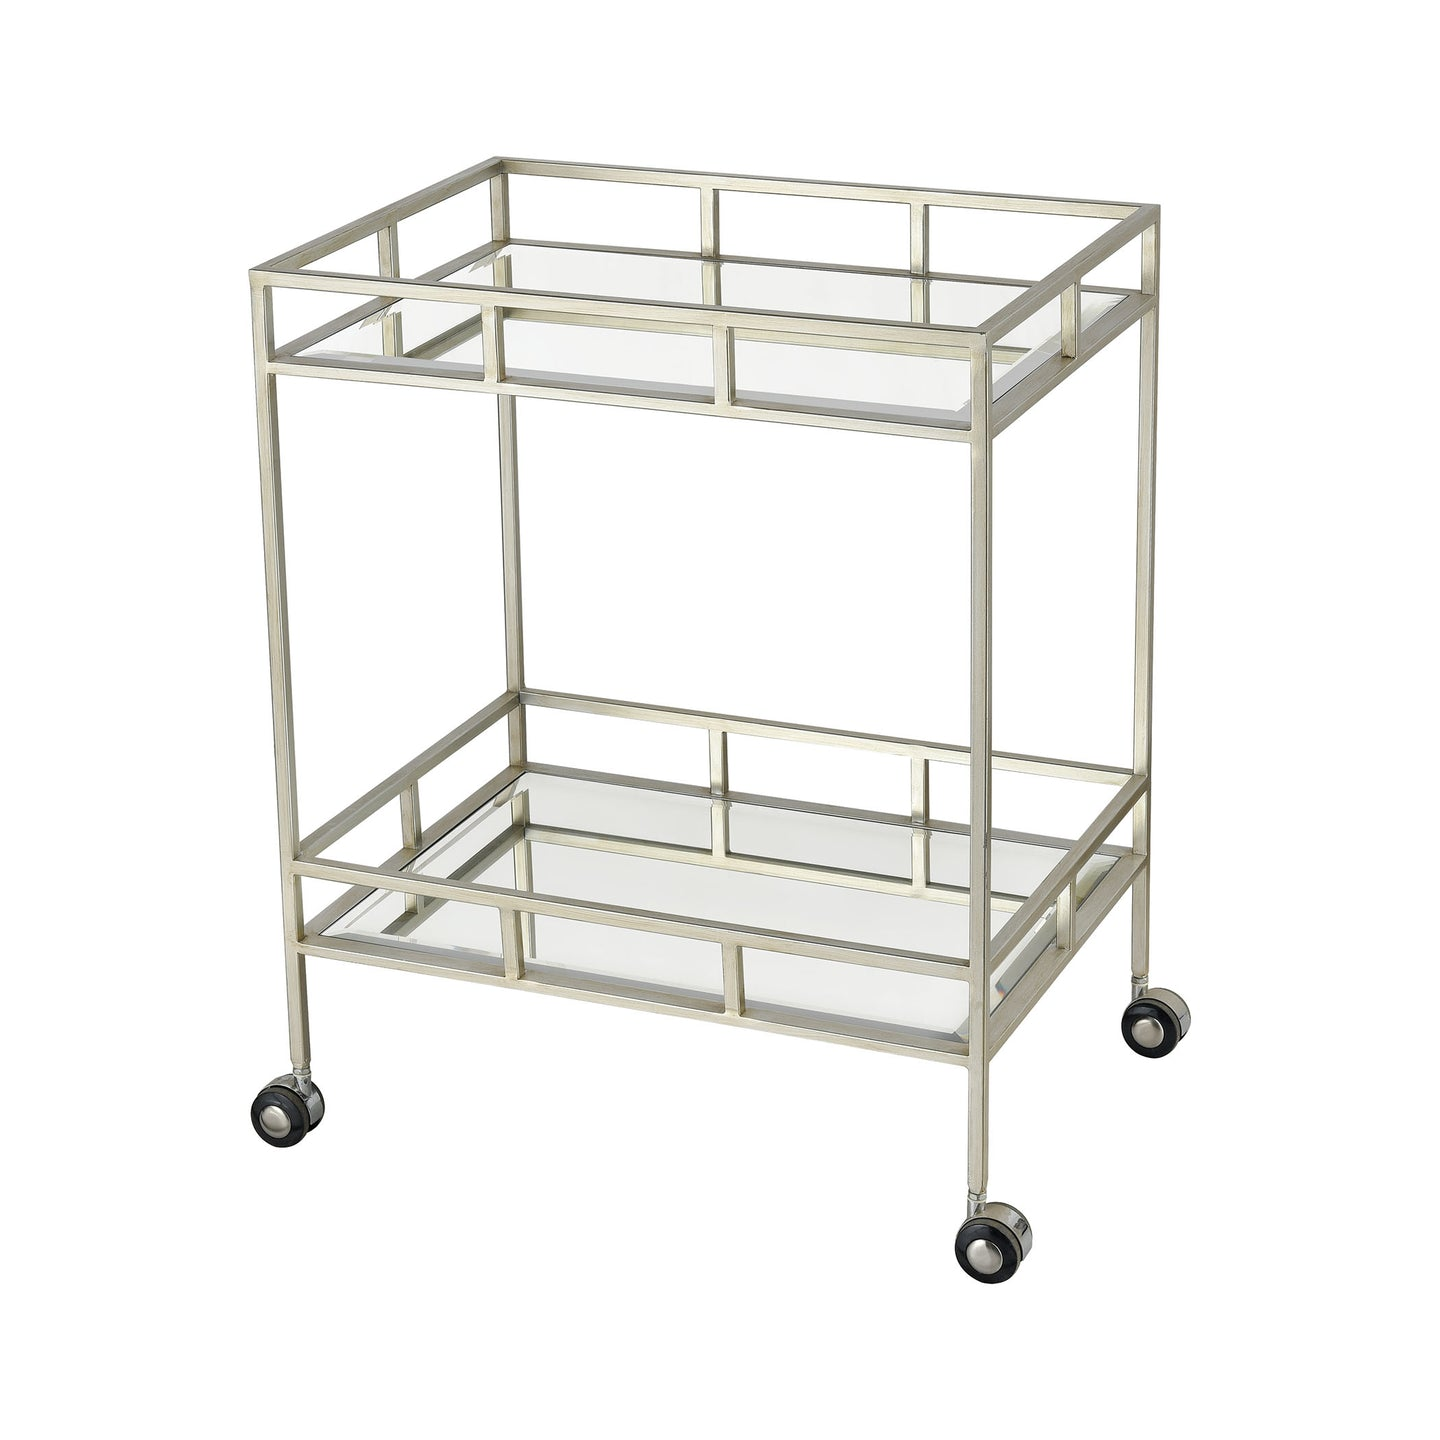 The Nines Bar Cart